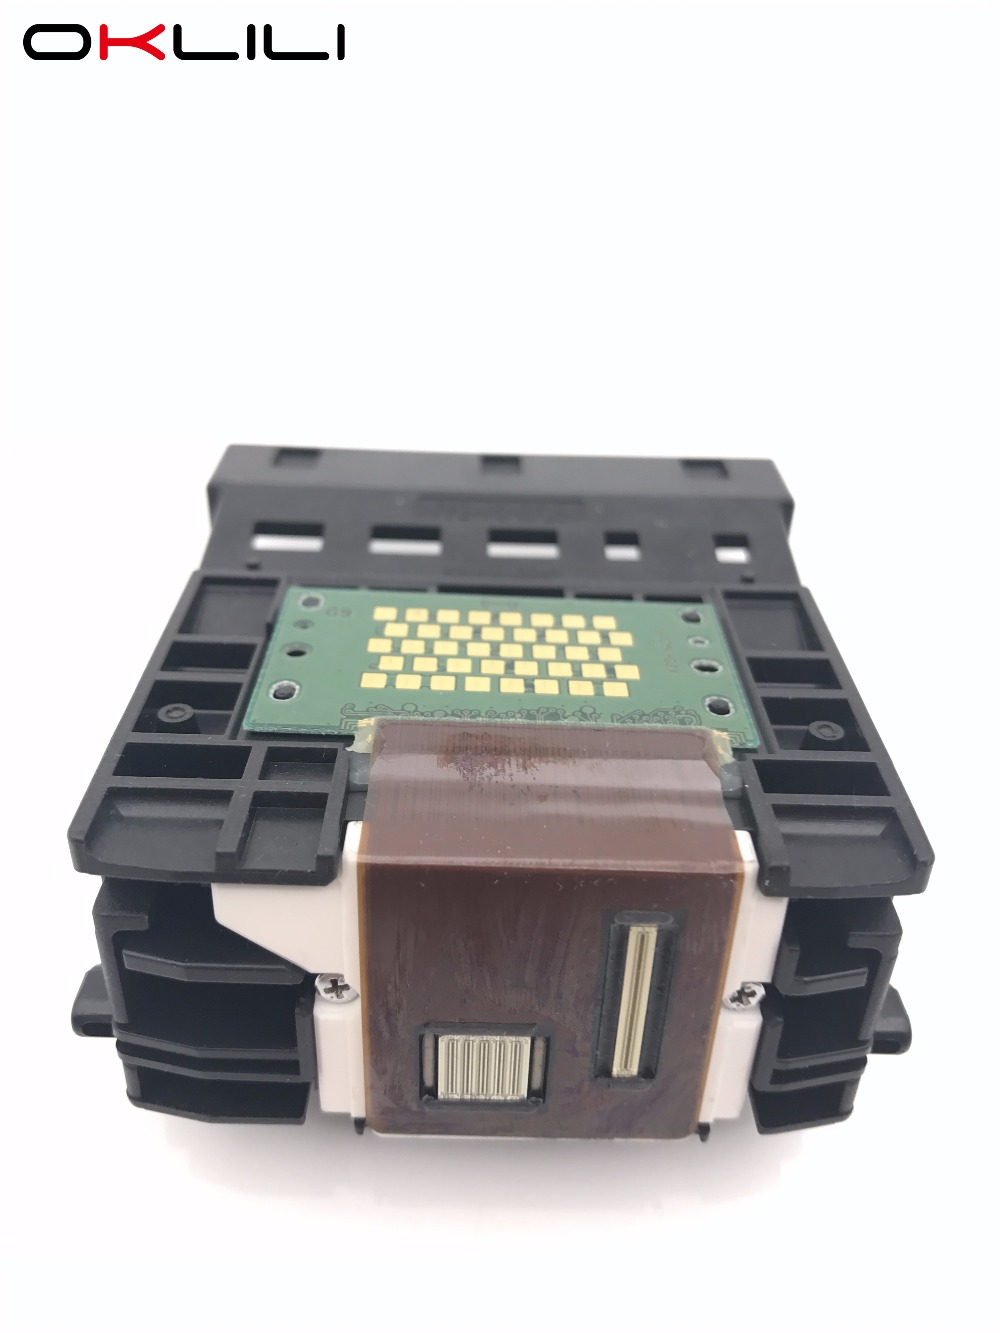 OKLILI ORIGINAL QY6-0045 QY6-0045-000 Printhead Print Head Printer Head for Canon i550 PIXUS 550i remanufactured qy6 0076 printhead print head printer head for canon pixus 9900i i9900 i9950 ip8600 ip8500 ip9910 pro9000 mark ii